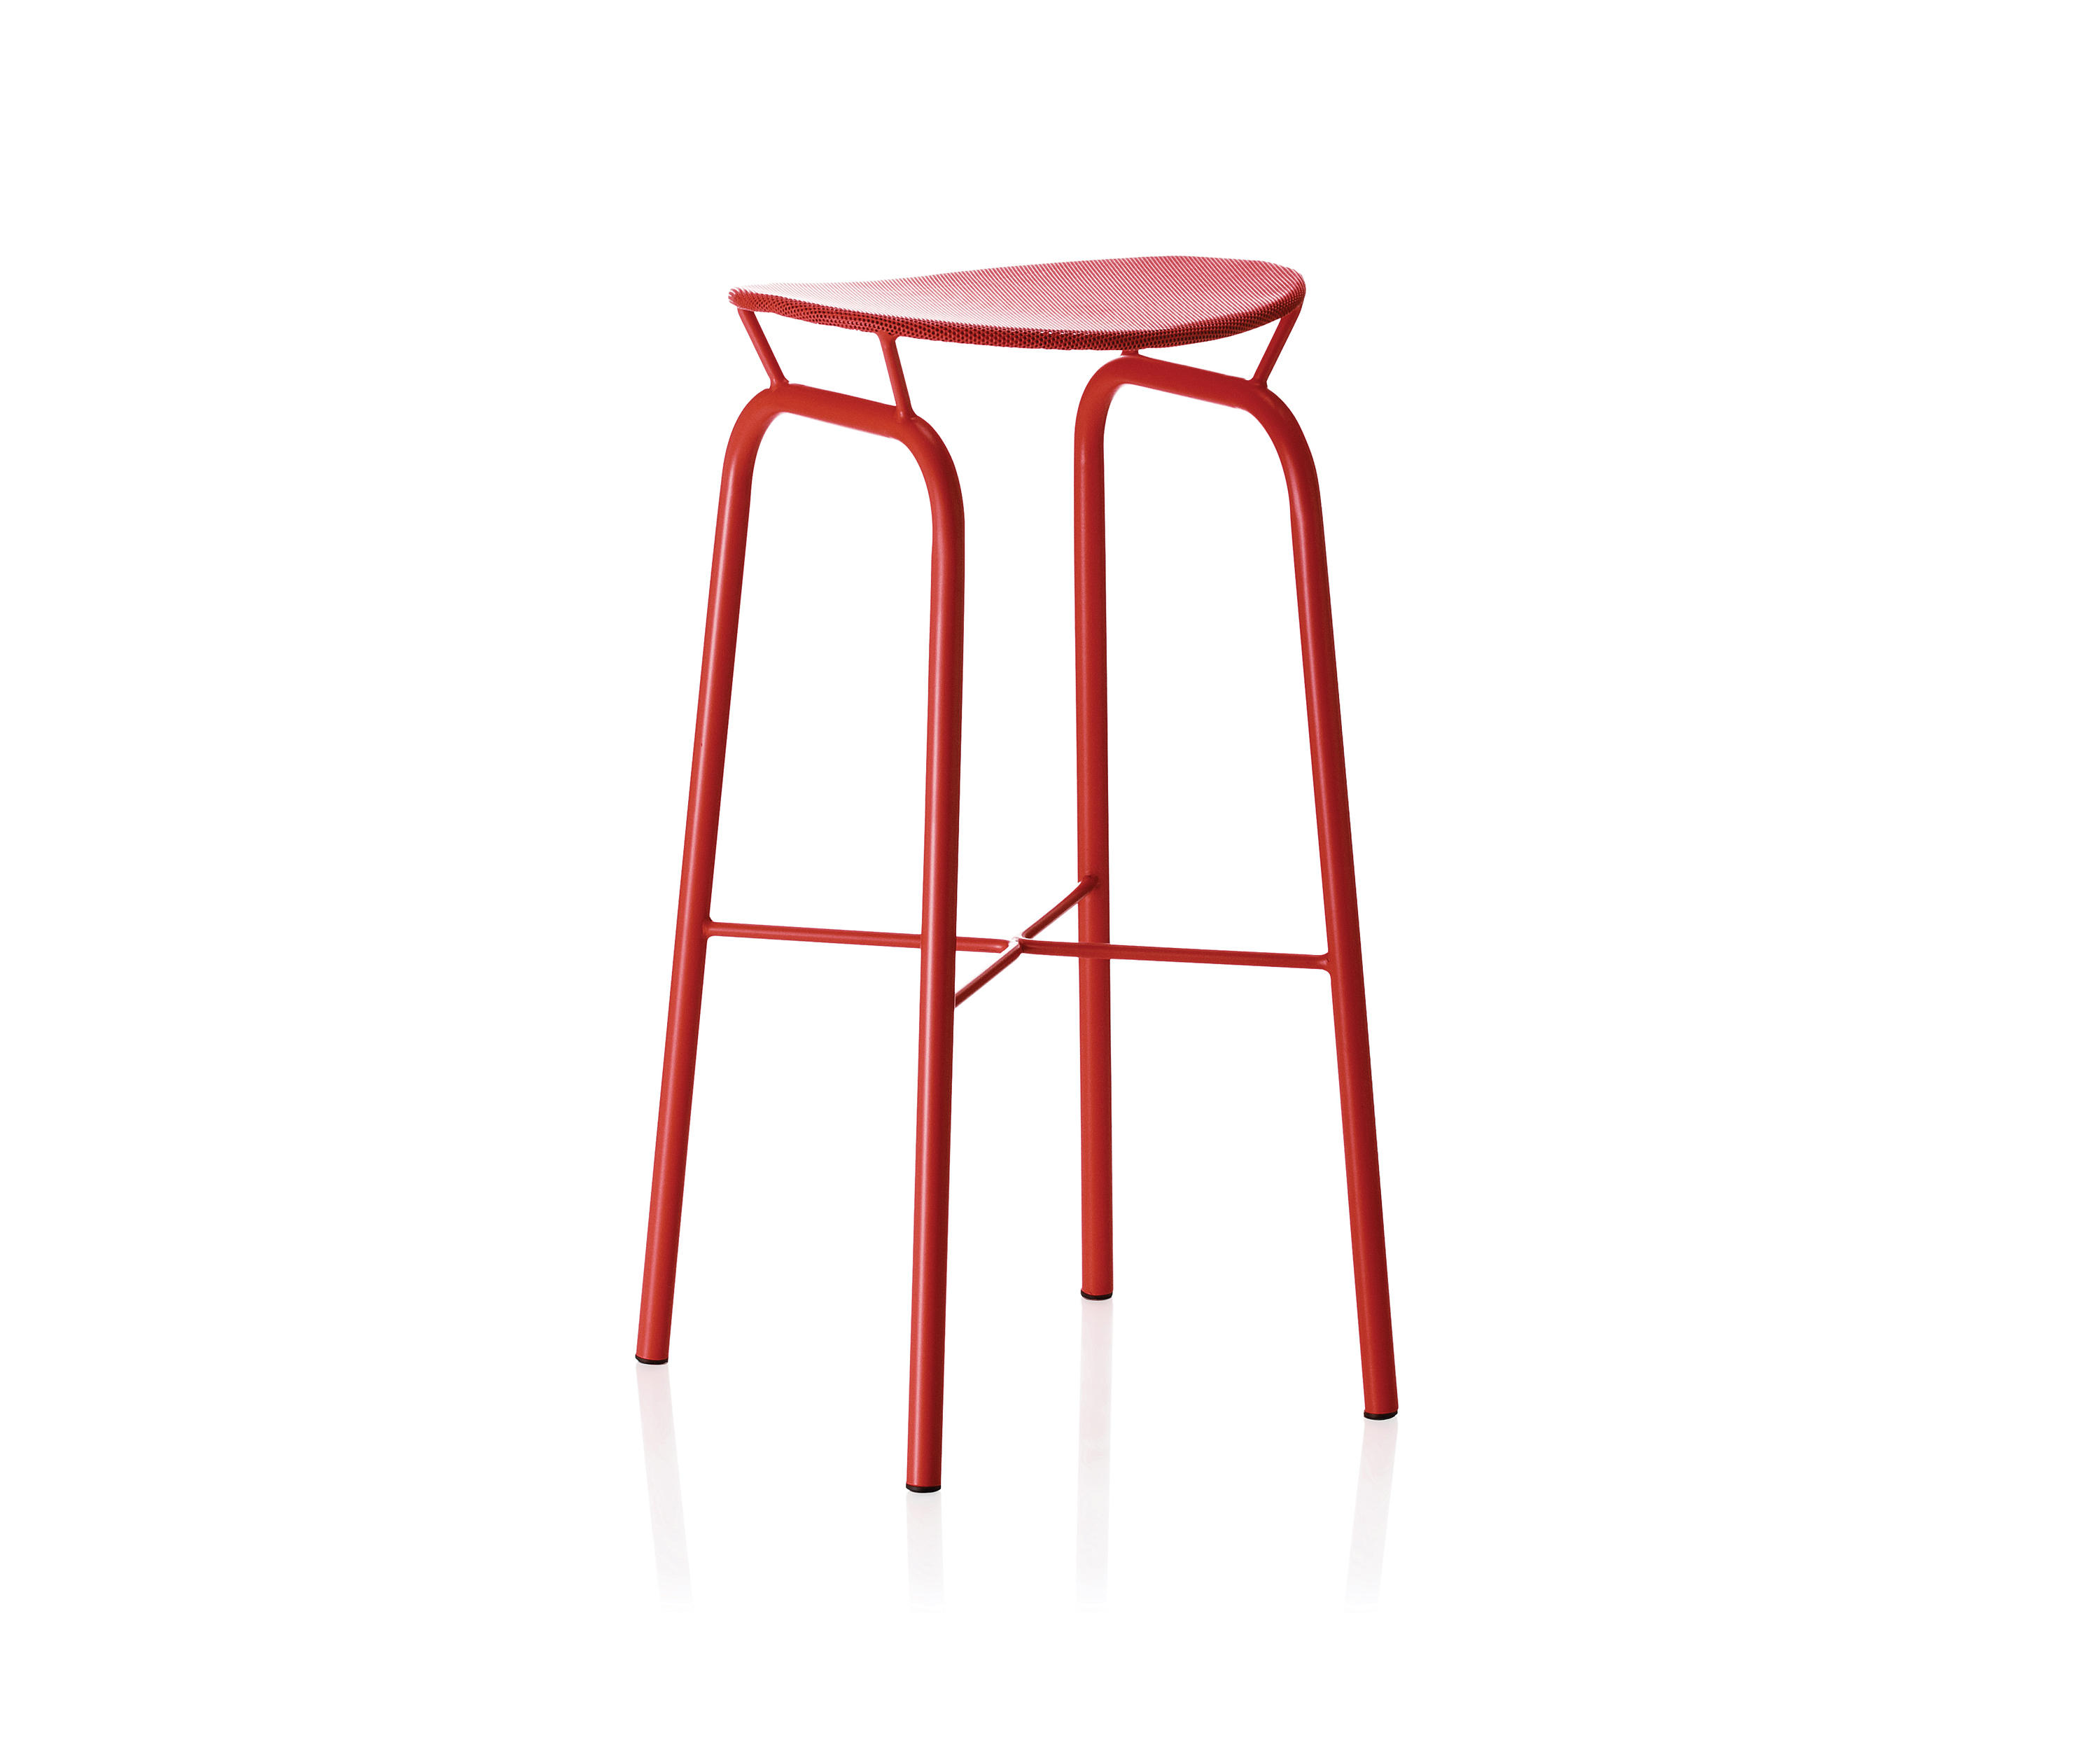 island breakfast seagrass industrial target backs height bar high cheap best for rug low size chair full stools red counter wooden swivel with chairs adjustable furniture leather up large kitchen teal back white stool upholstered metal and of